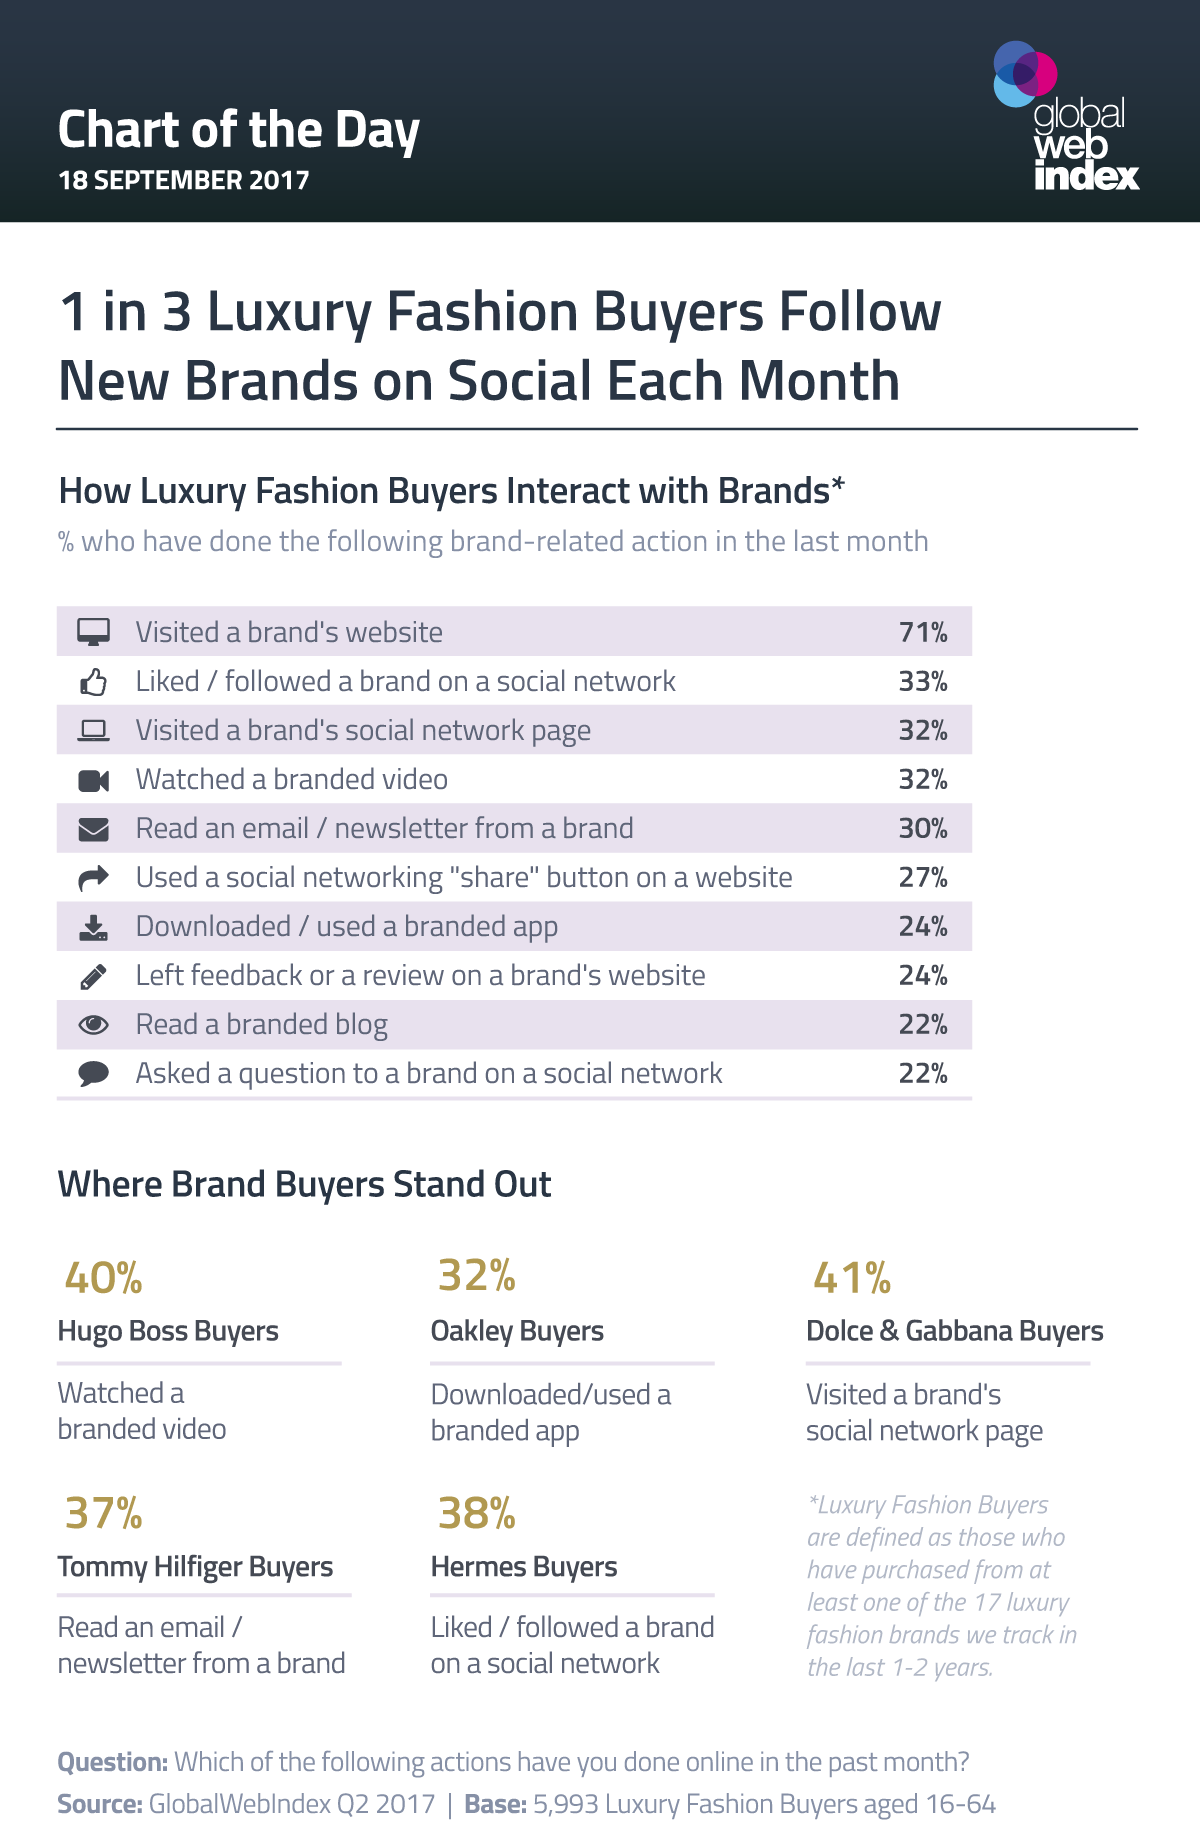 1 in 3 Luxury Fashion Buyers Follow New Brands on Social Each Month